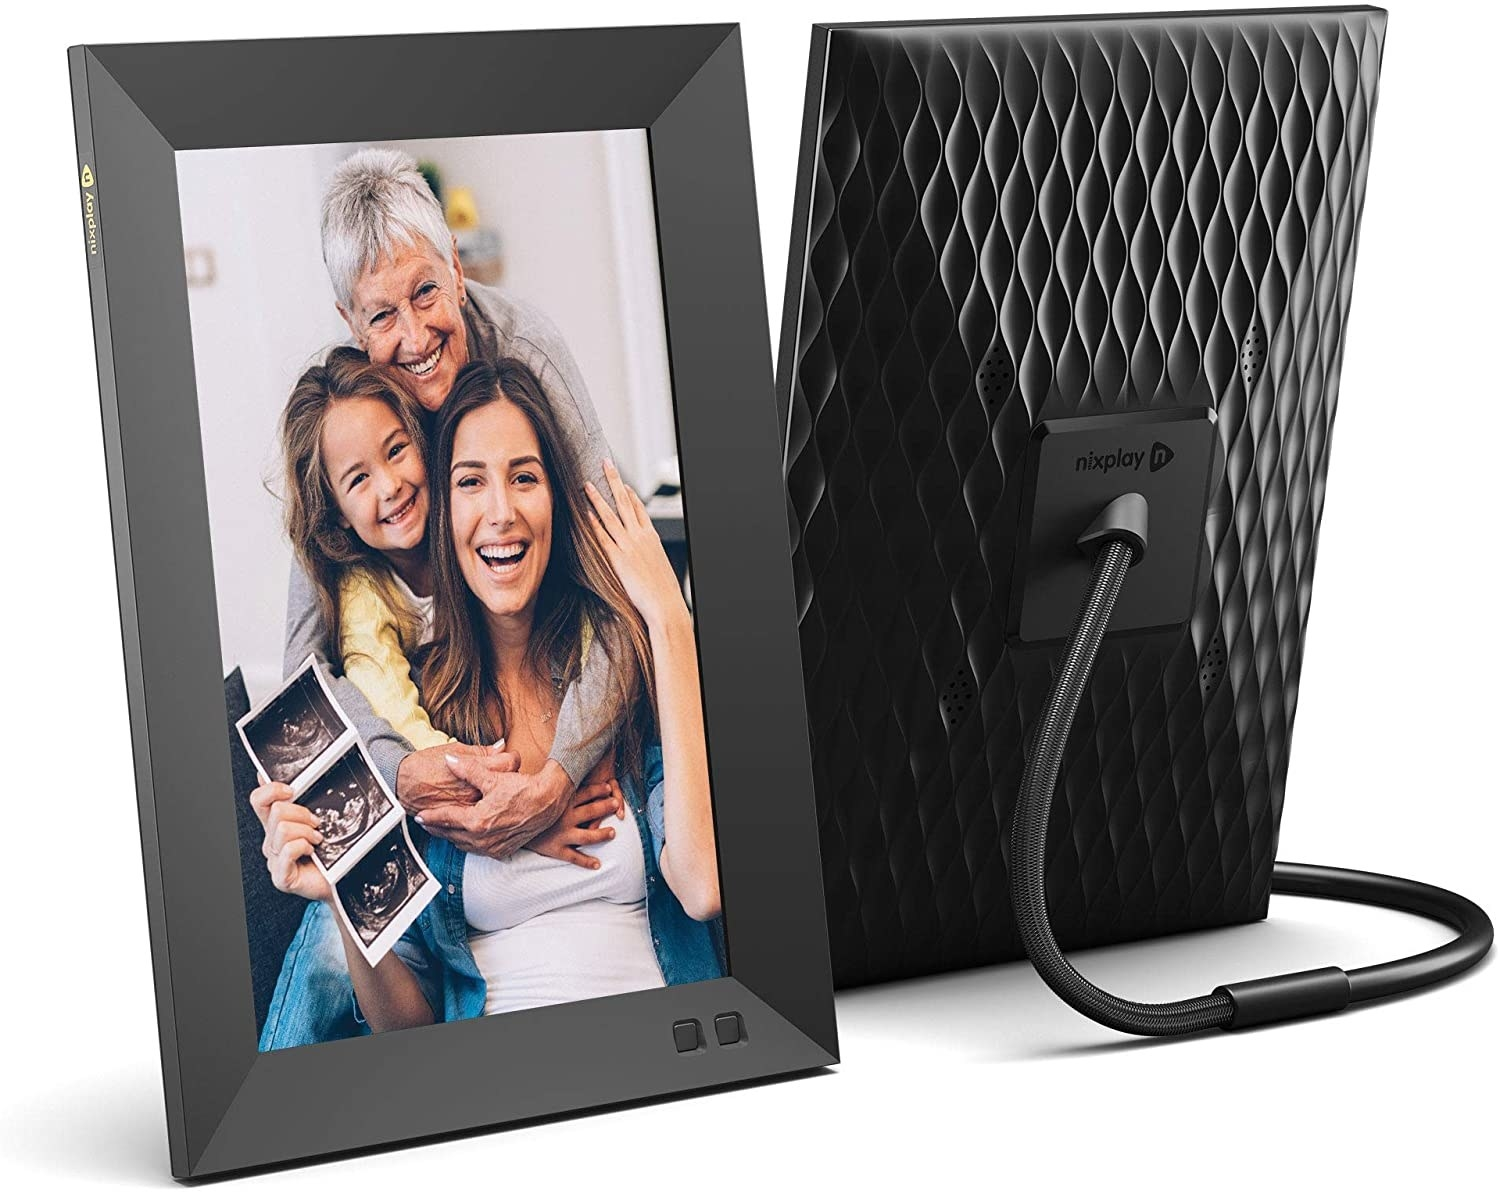 Black picture frame with cord going down the back